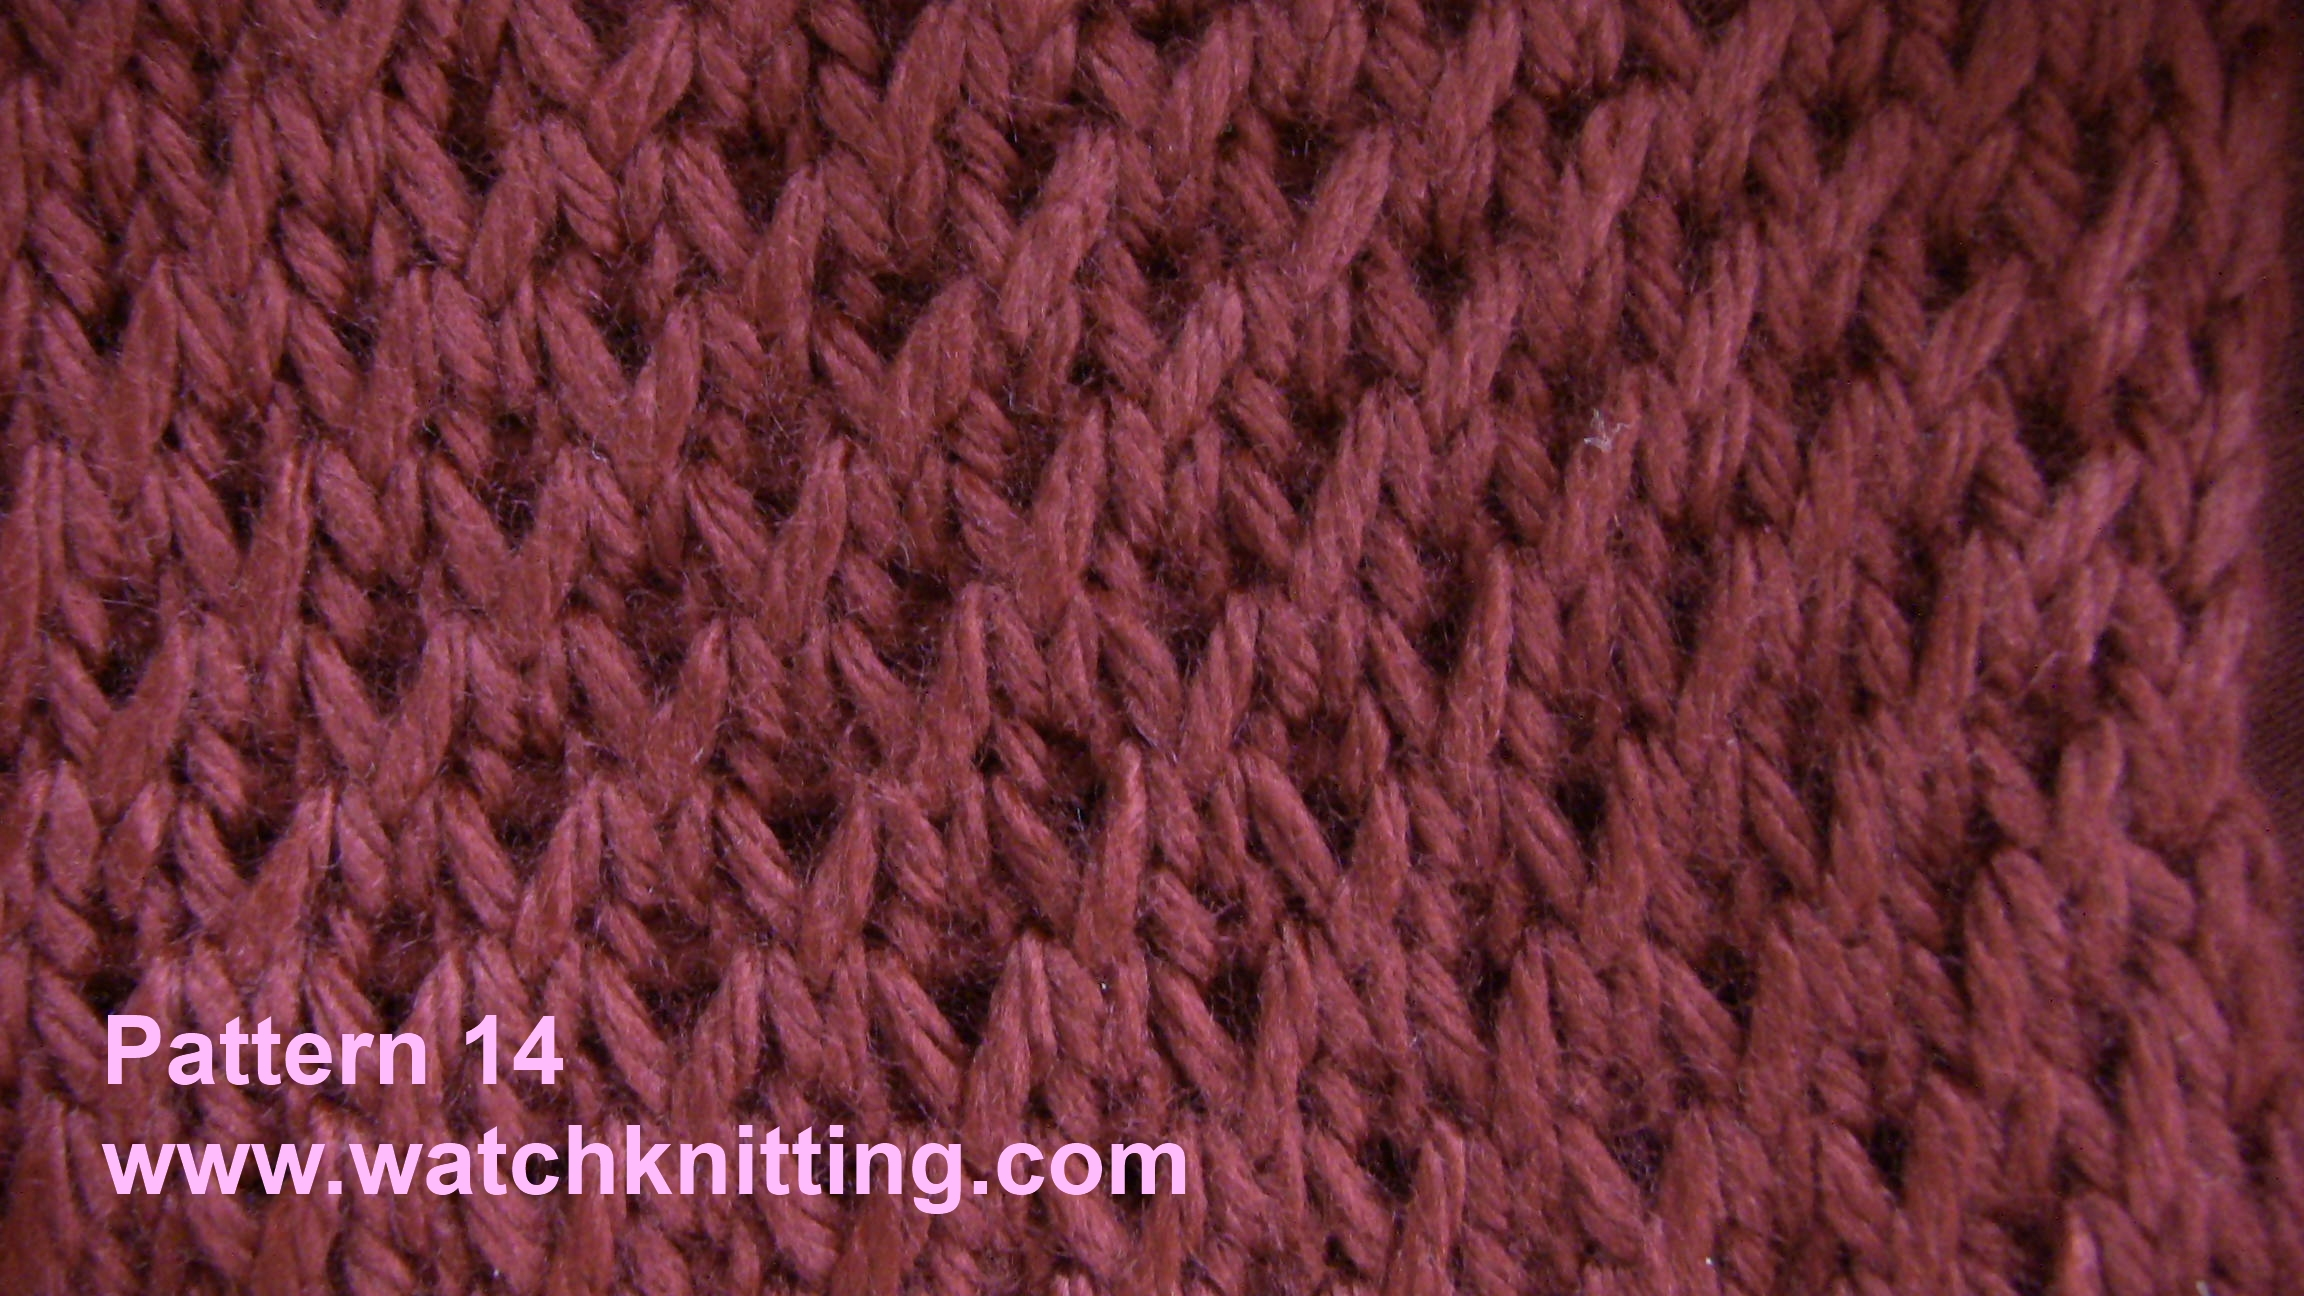 Knitting Stitches Pattern : Posts by Fariba Zahed Watch knitting - Page 2